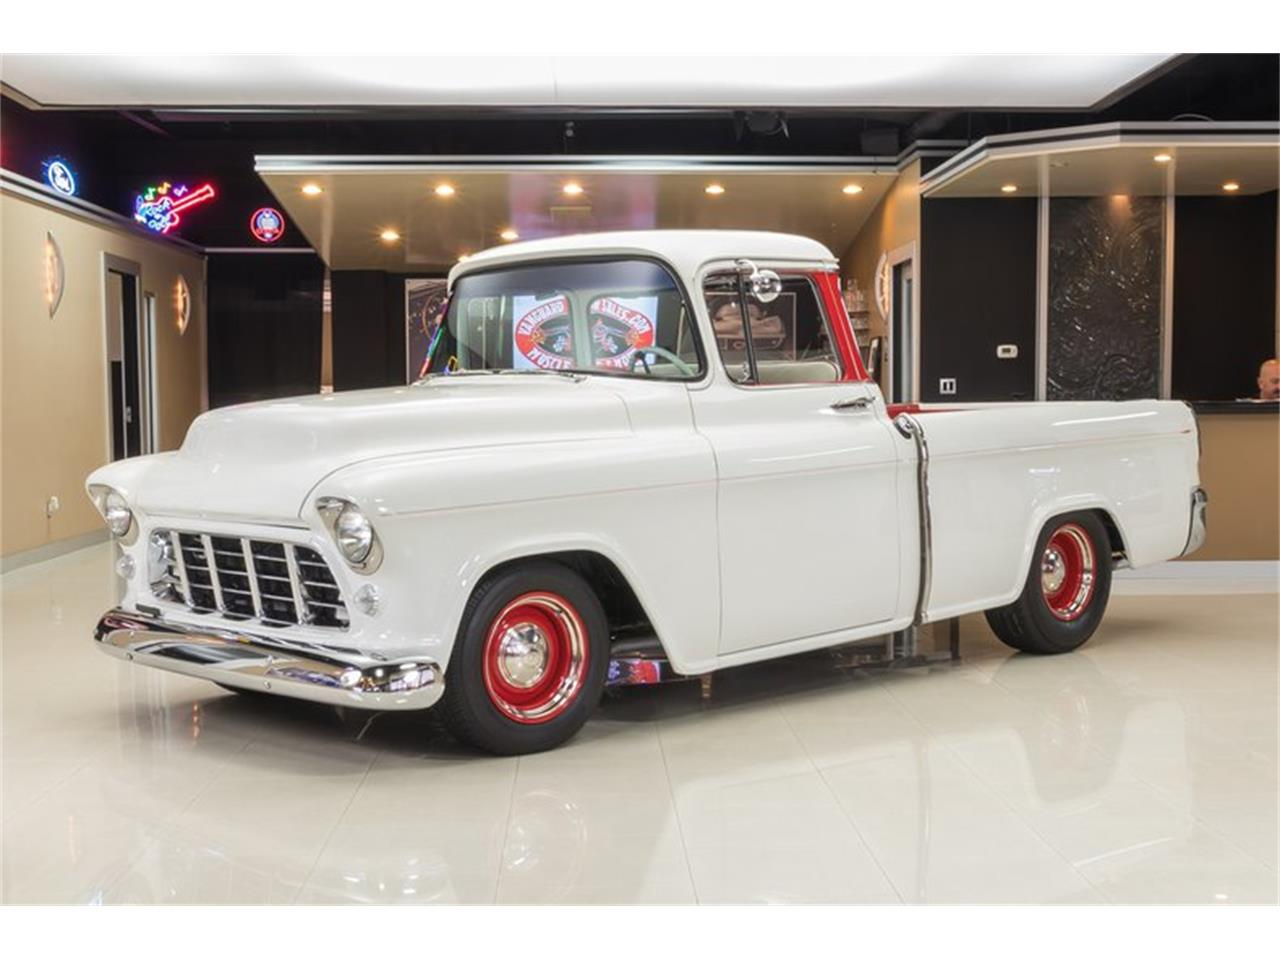 1955 chevrolet cameo for sale classiccars com cc 974283large picture of \u002755 cameo kvrf